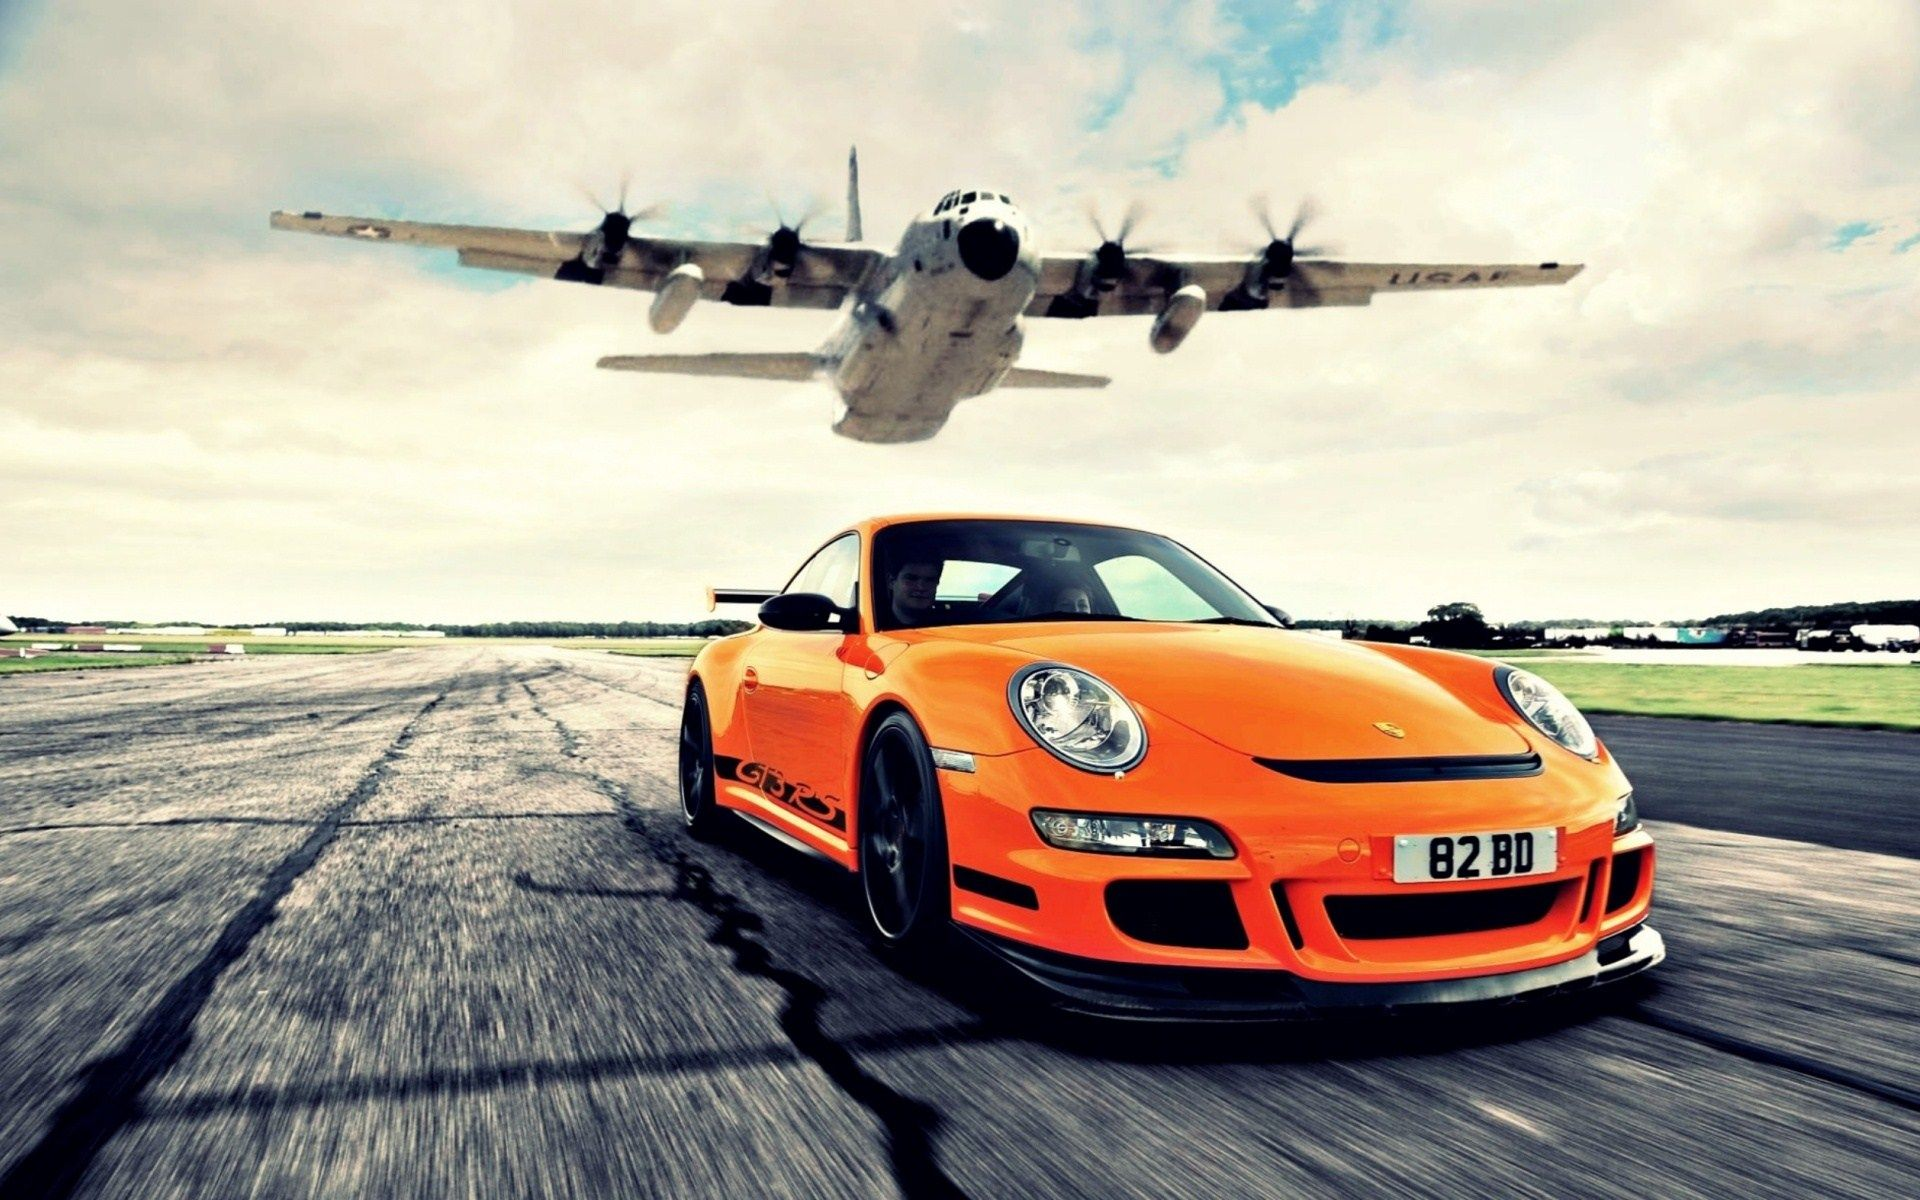 Porsche Gt3 Rs Aircraft Photo Hd Image Wallpaper Hd Car Wallpaper Porsche Porsche 911 Gt3 Carros Porsche